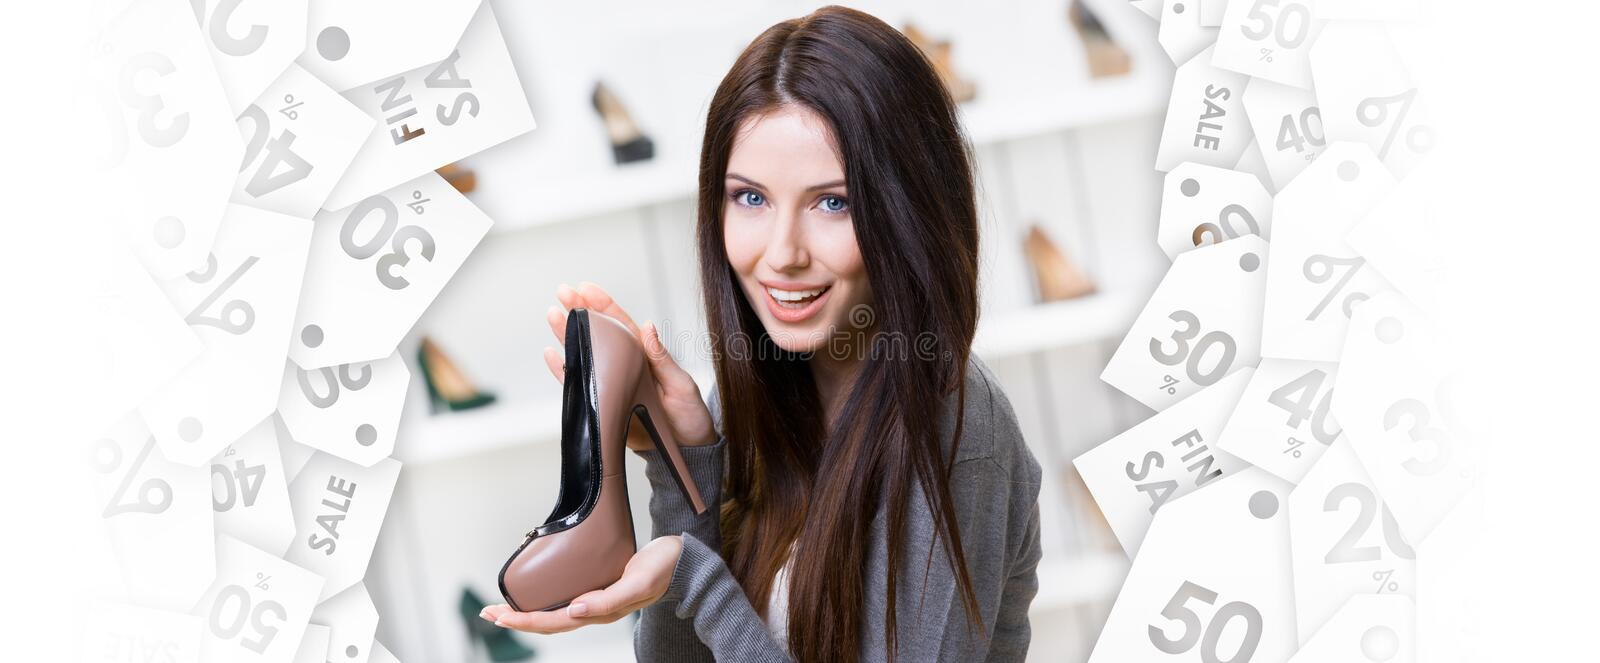 Woman keeping coffee-colored shoe. Black Friday sale stock image